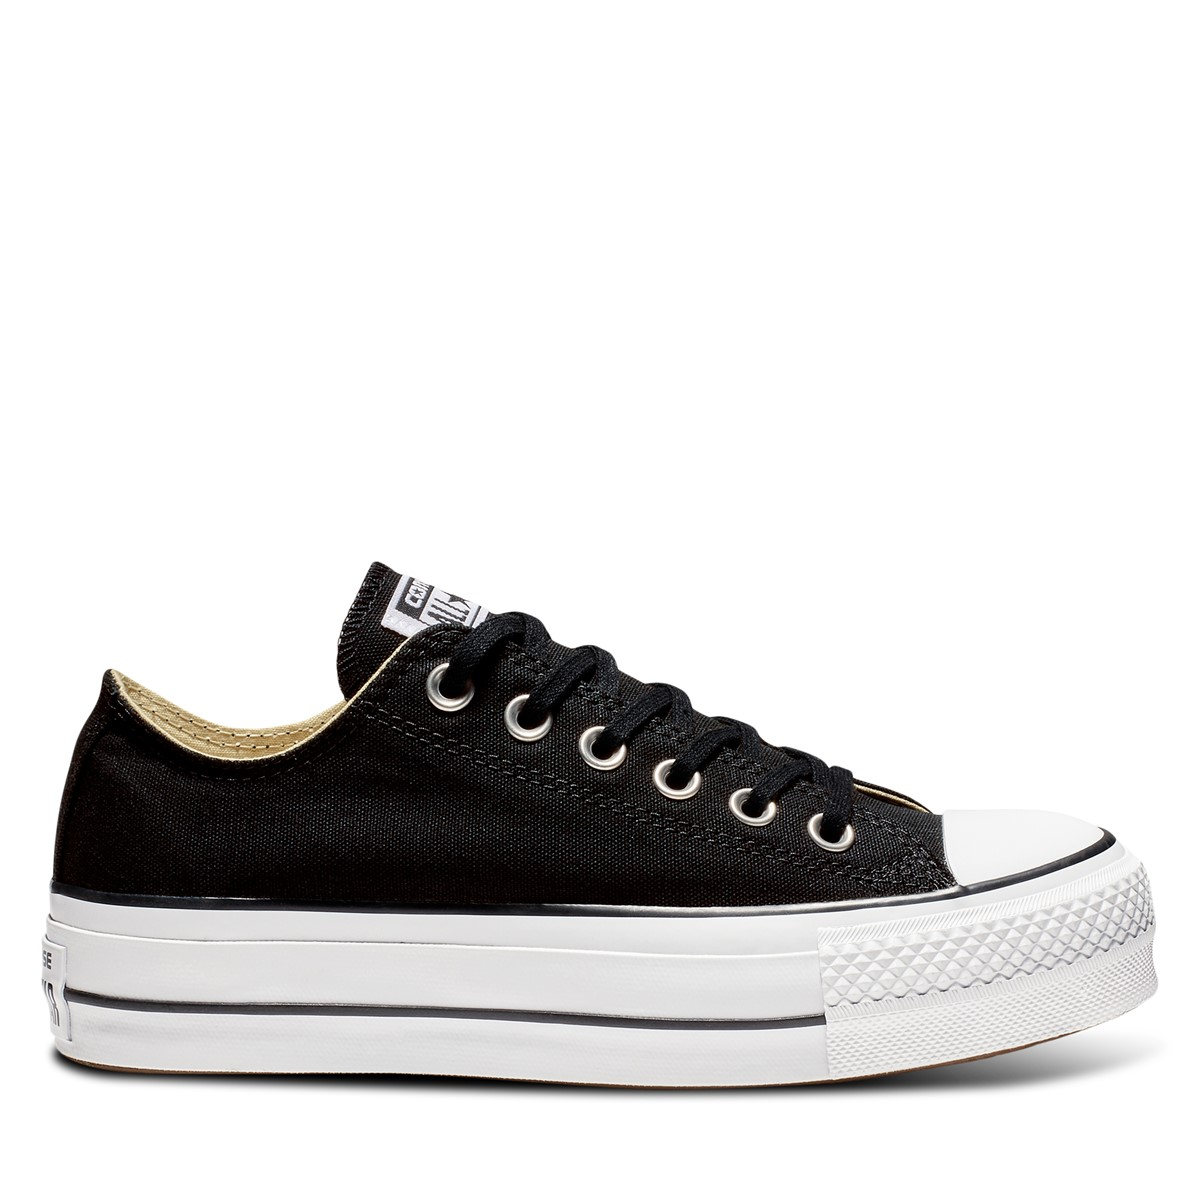 Women's Lift Low Top Platform Sneakers in Black